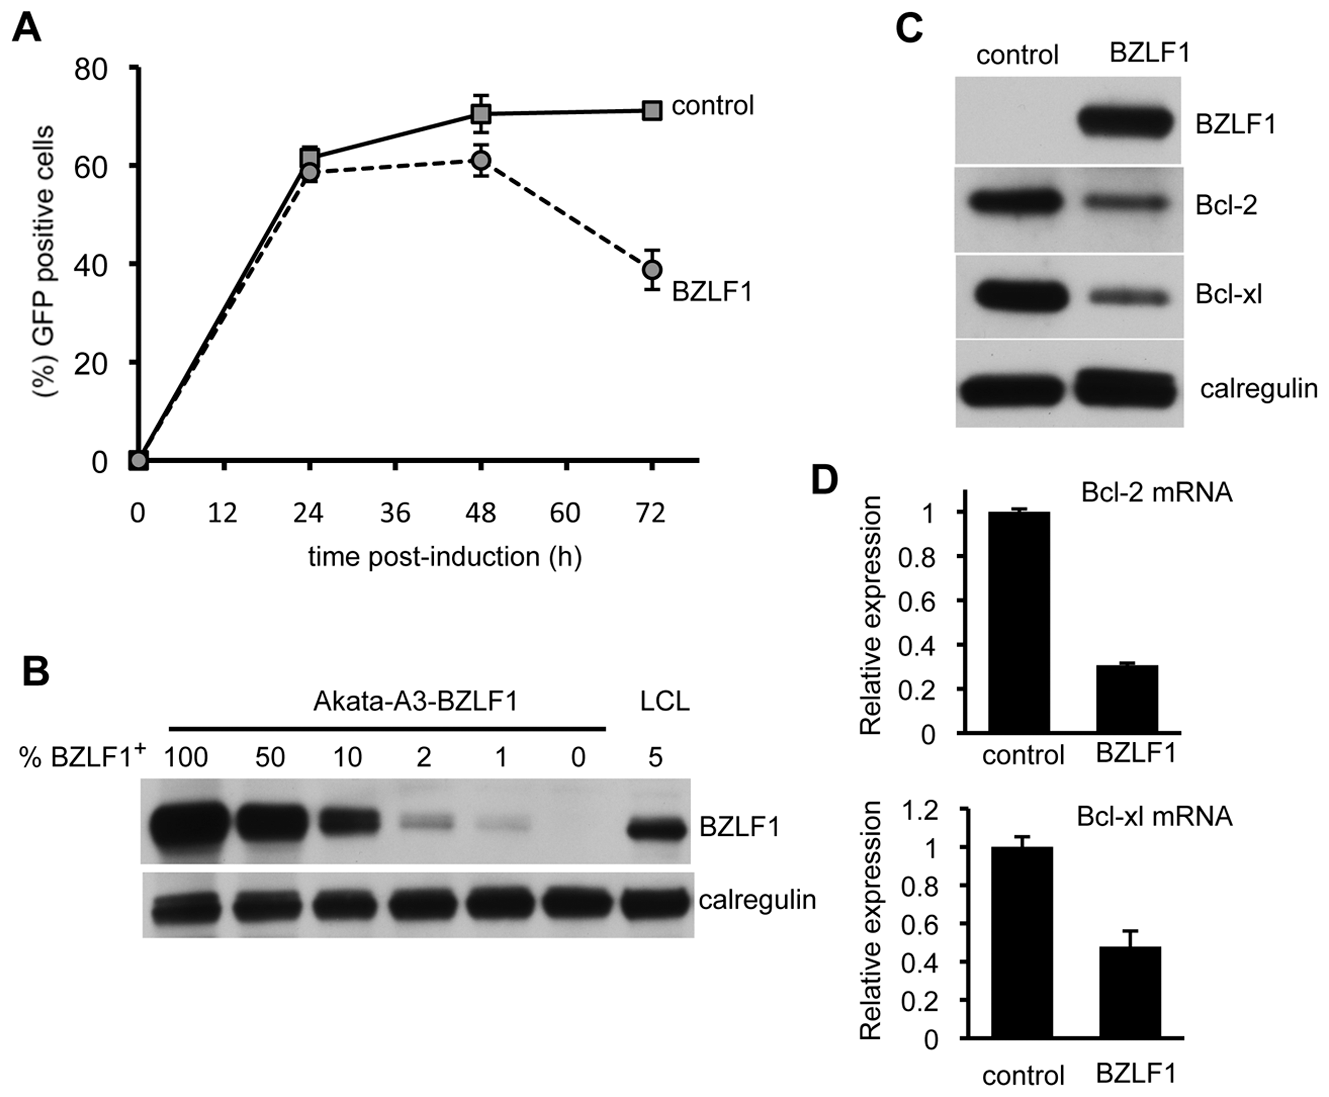 BZLF1 downregulates Bcl-2 family members.